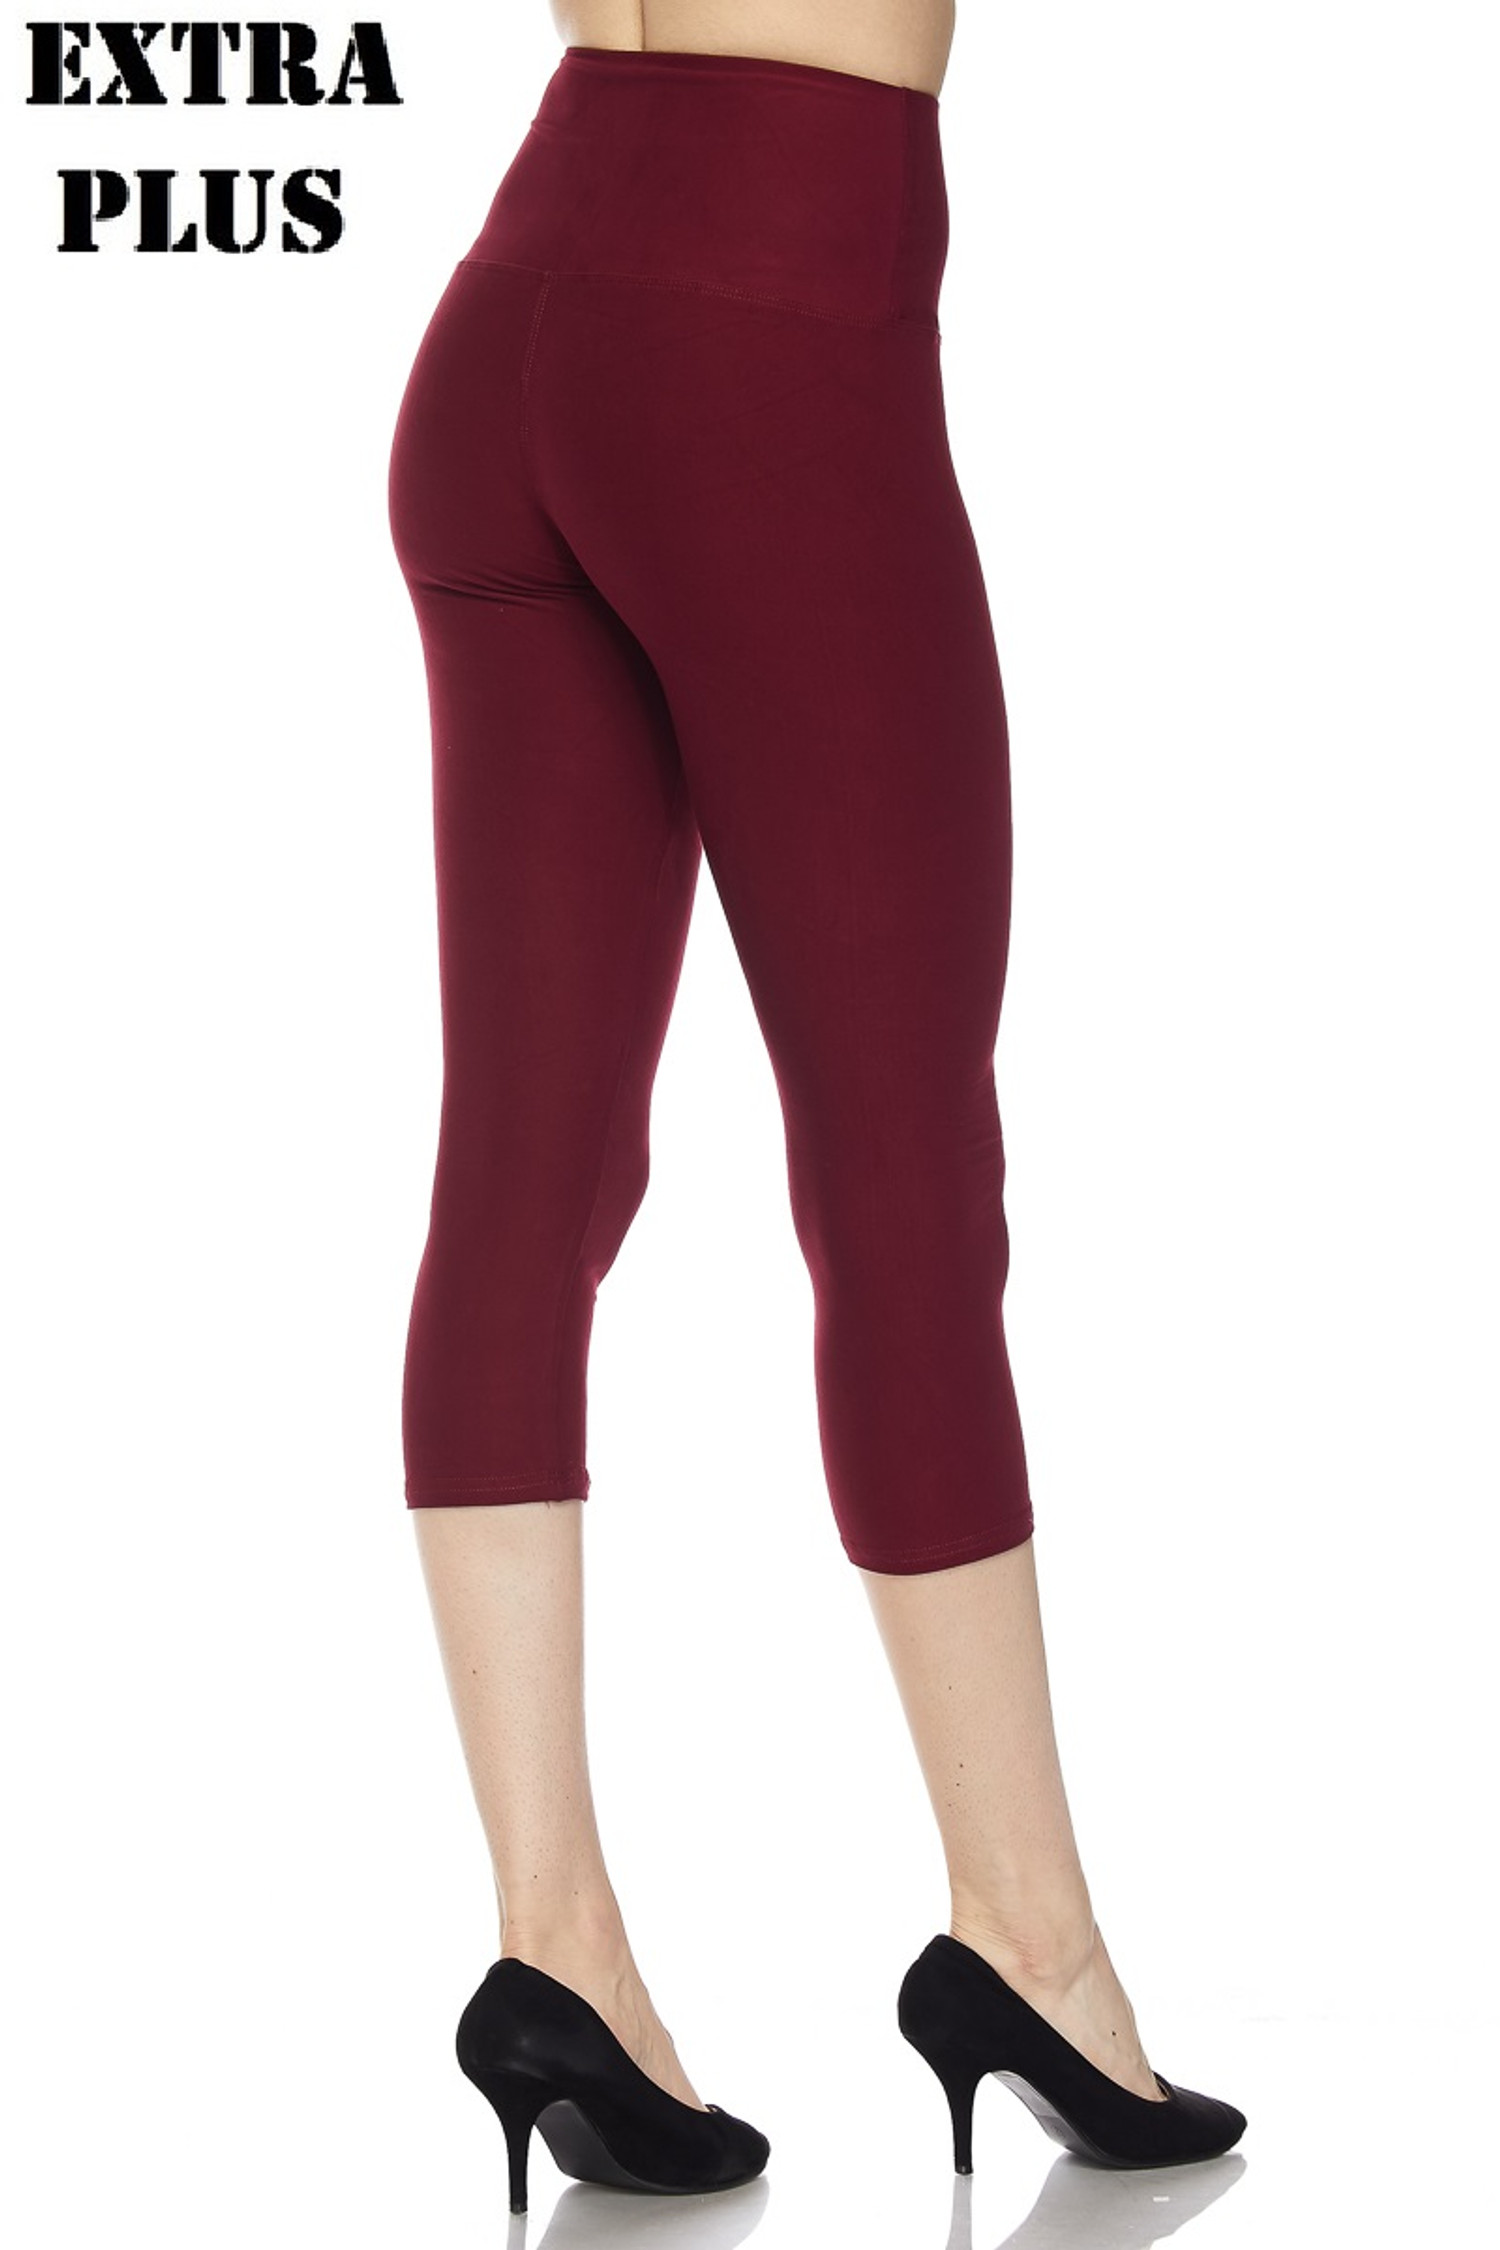 Brushed  High Waisted Plus Size Basic Solid Capris - 5 Inch - 3X-5X